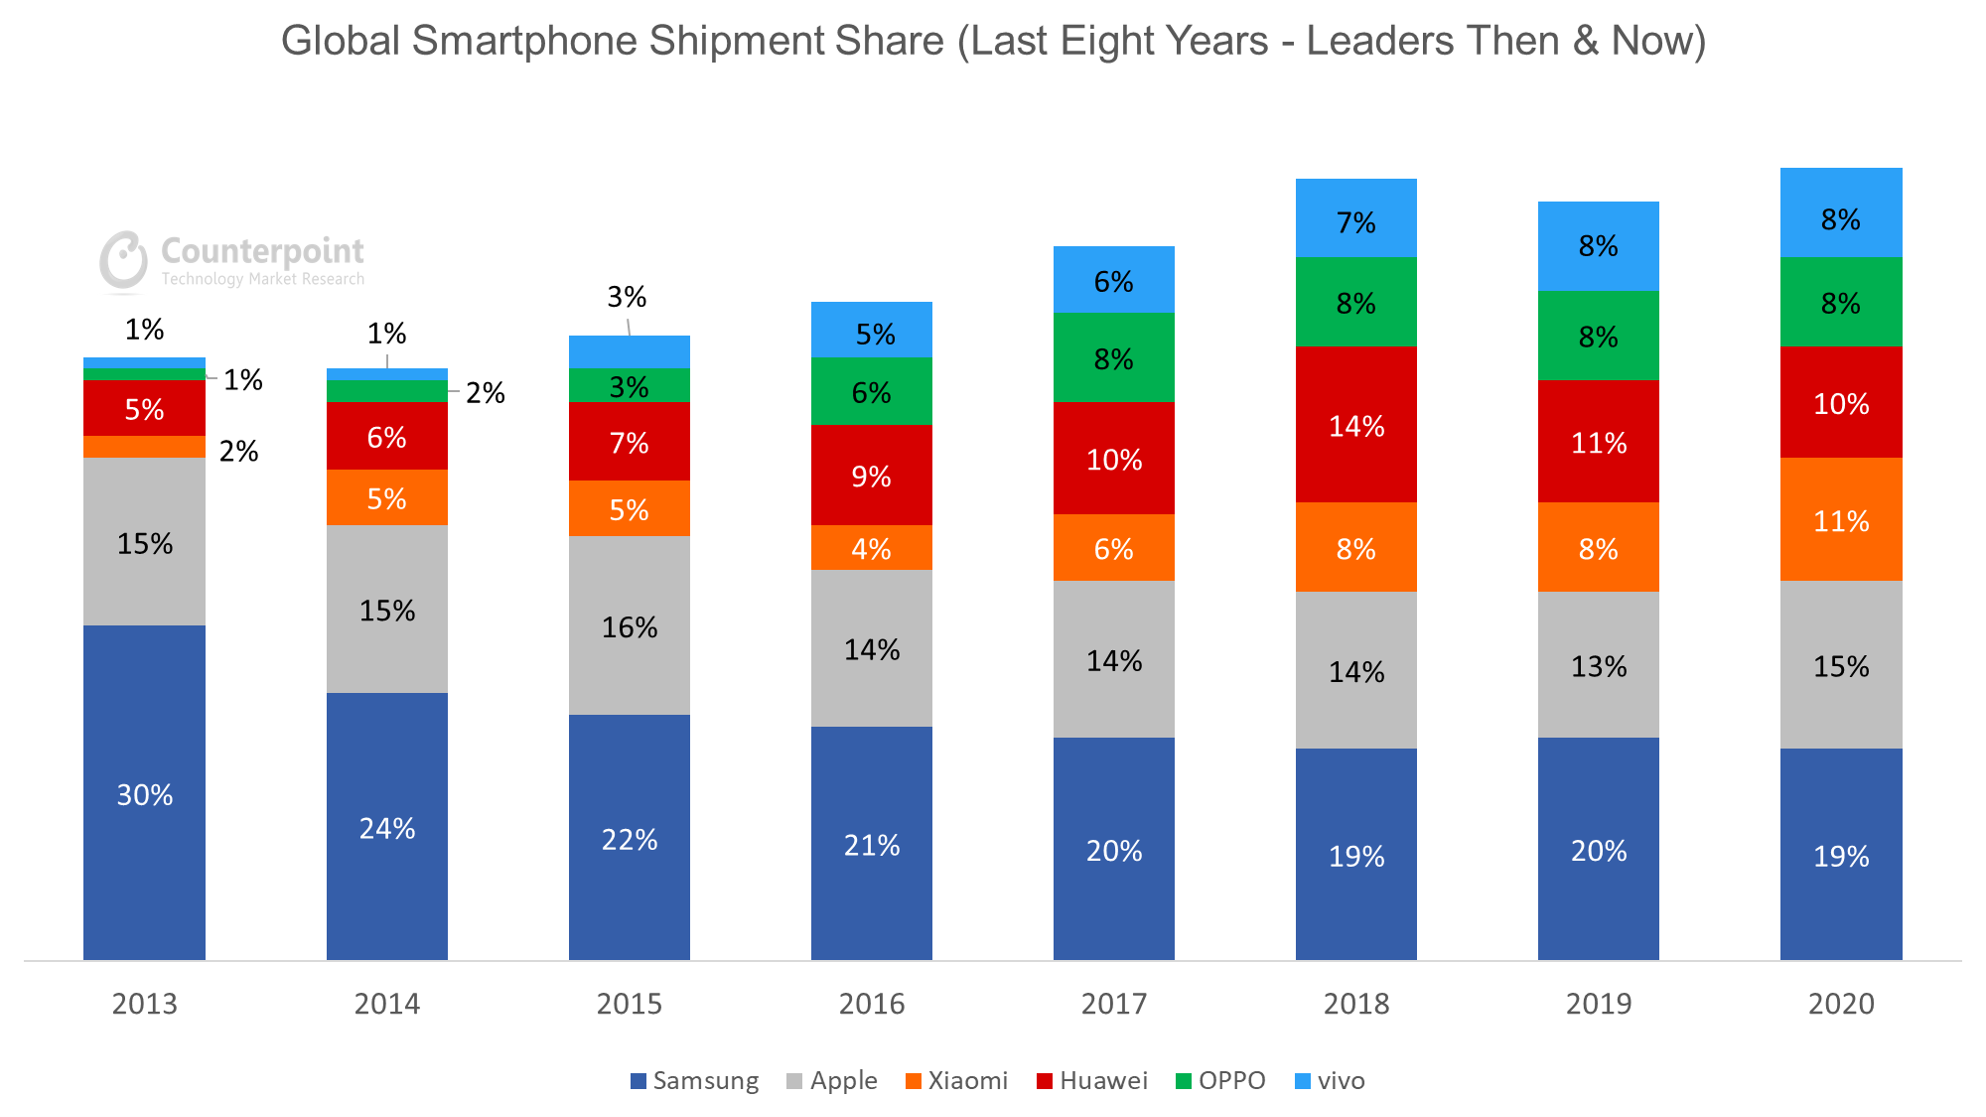 Counterpoint Research Global Smartphone Shipment Share (Last 8 Years - Leaders Then & Now)